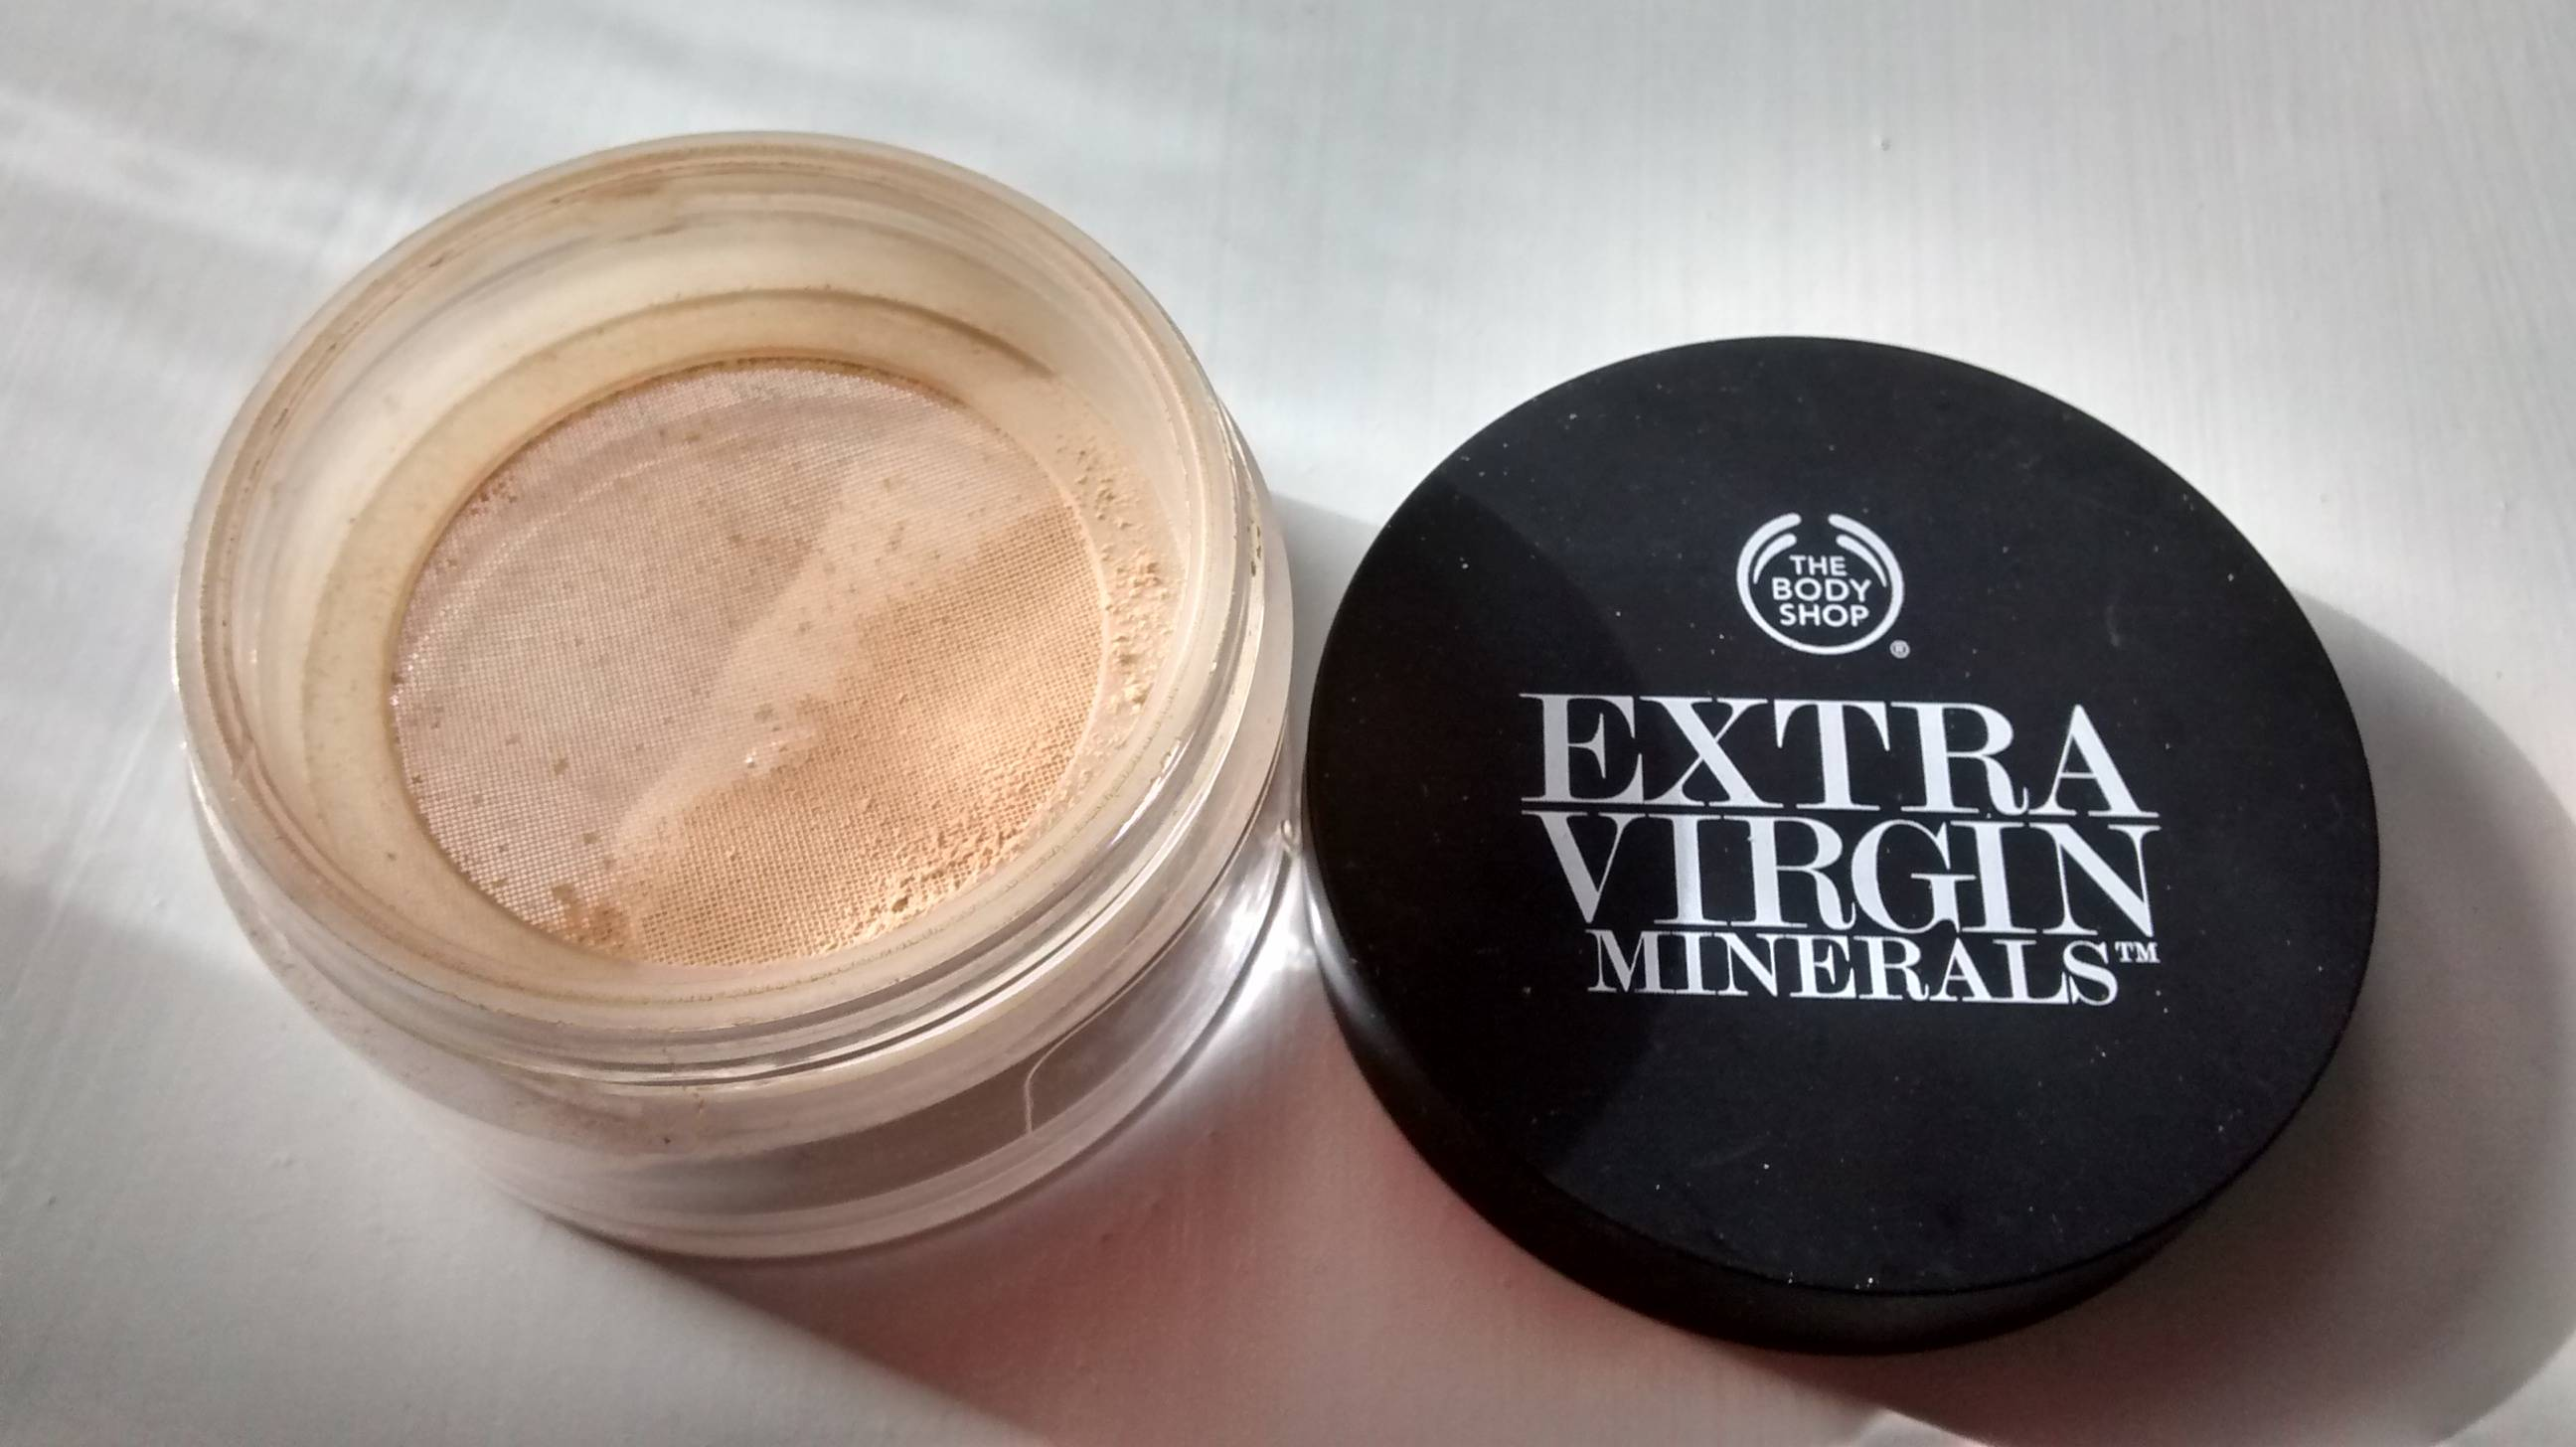 The Body Shop Mineral Foundation.